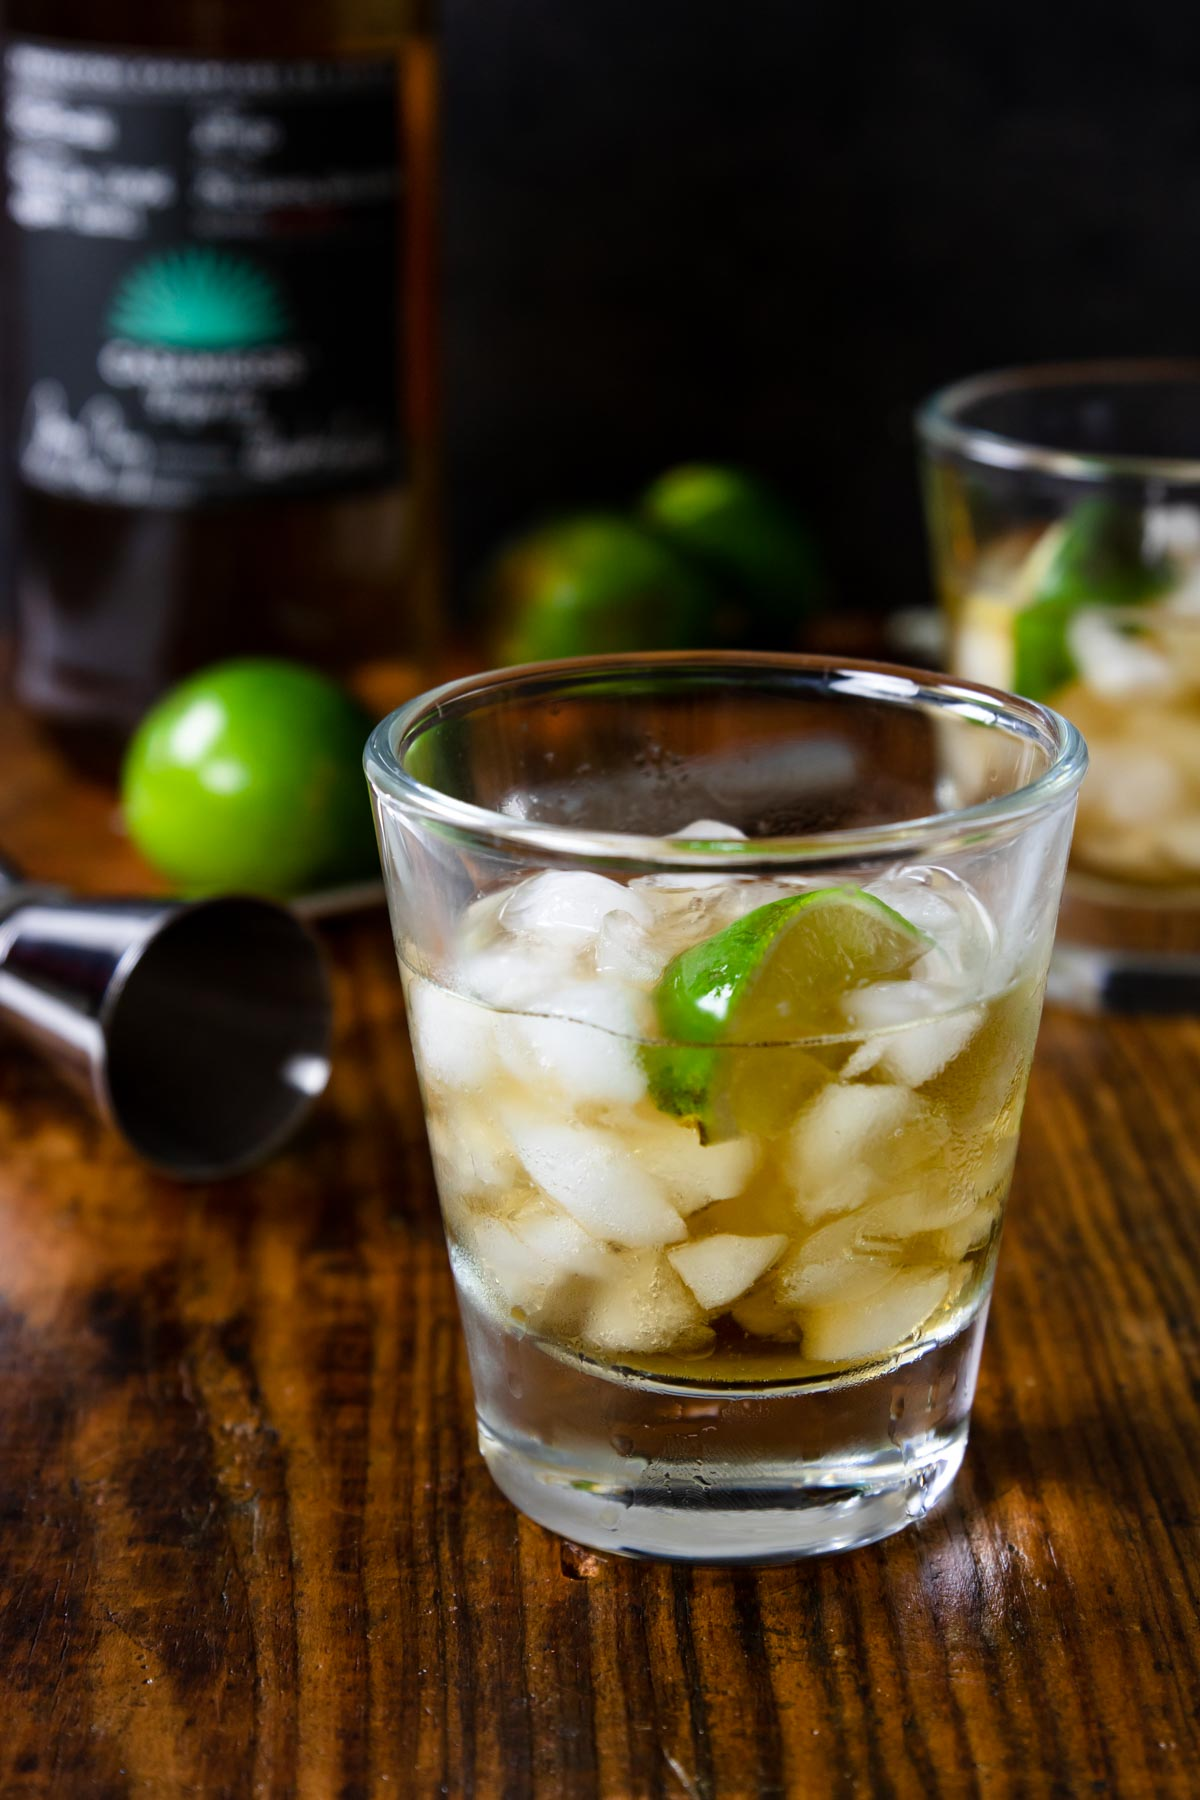 anejo tequila on the rocks in a glass with a lime and a bottle of tequila in the background